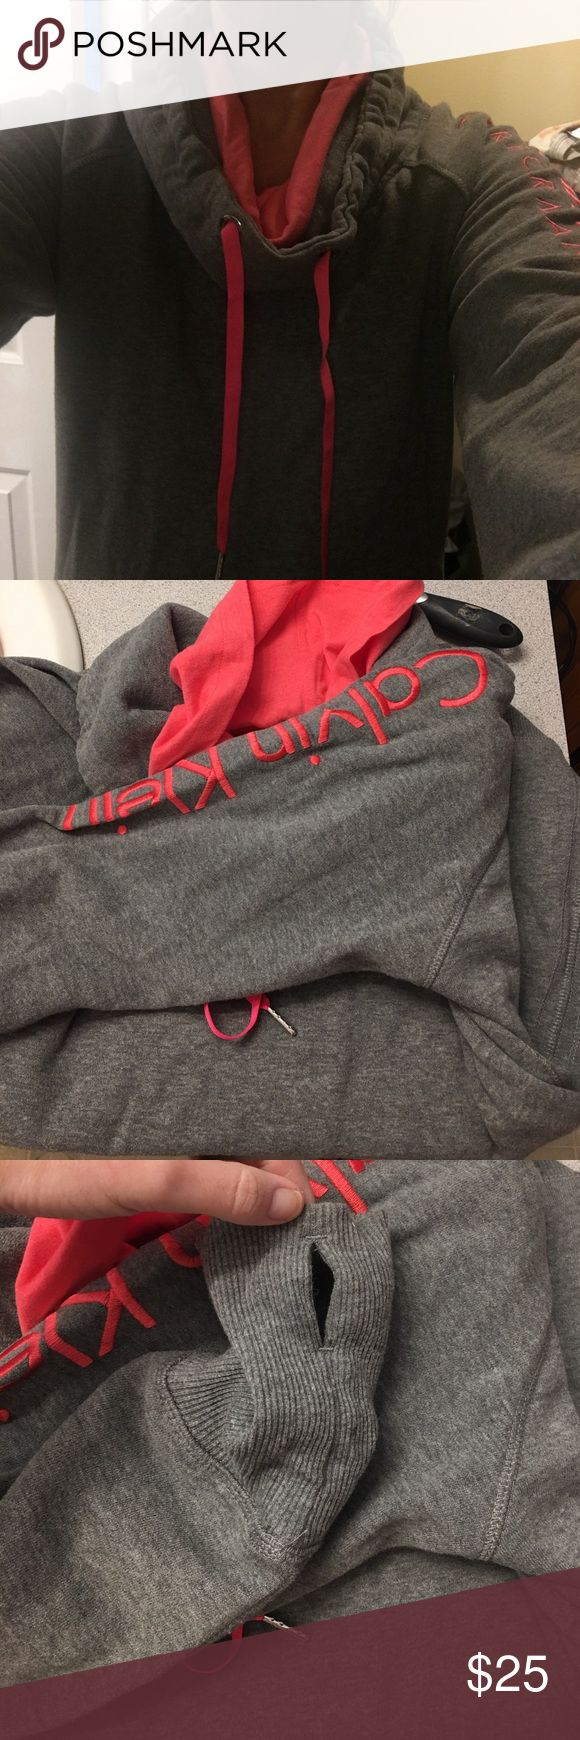 Calvin Klein cowl neck sweatshirt Gray and pink Calvin Klein cowl neck pullover hoodie with cut out for thumbs. Worn once, perfect condition. Calvin Klein Tops Sweatshirts & Hoodies